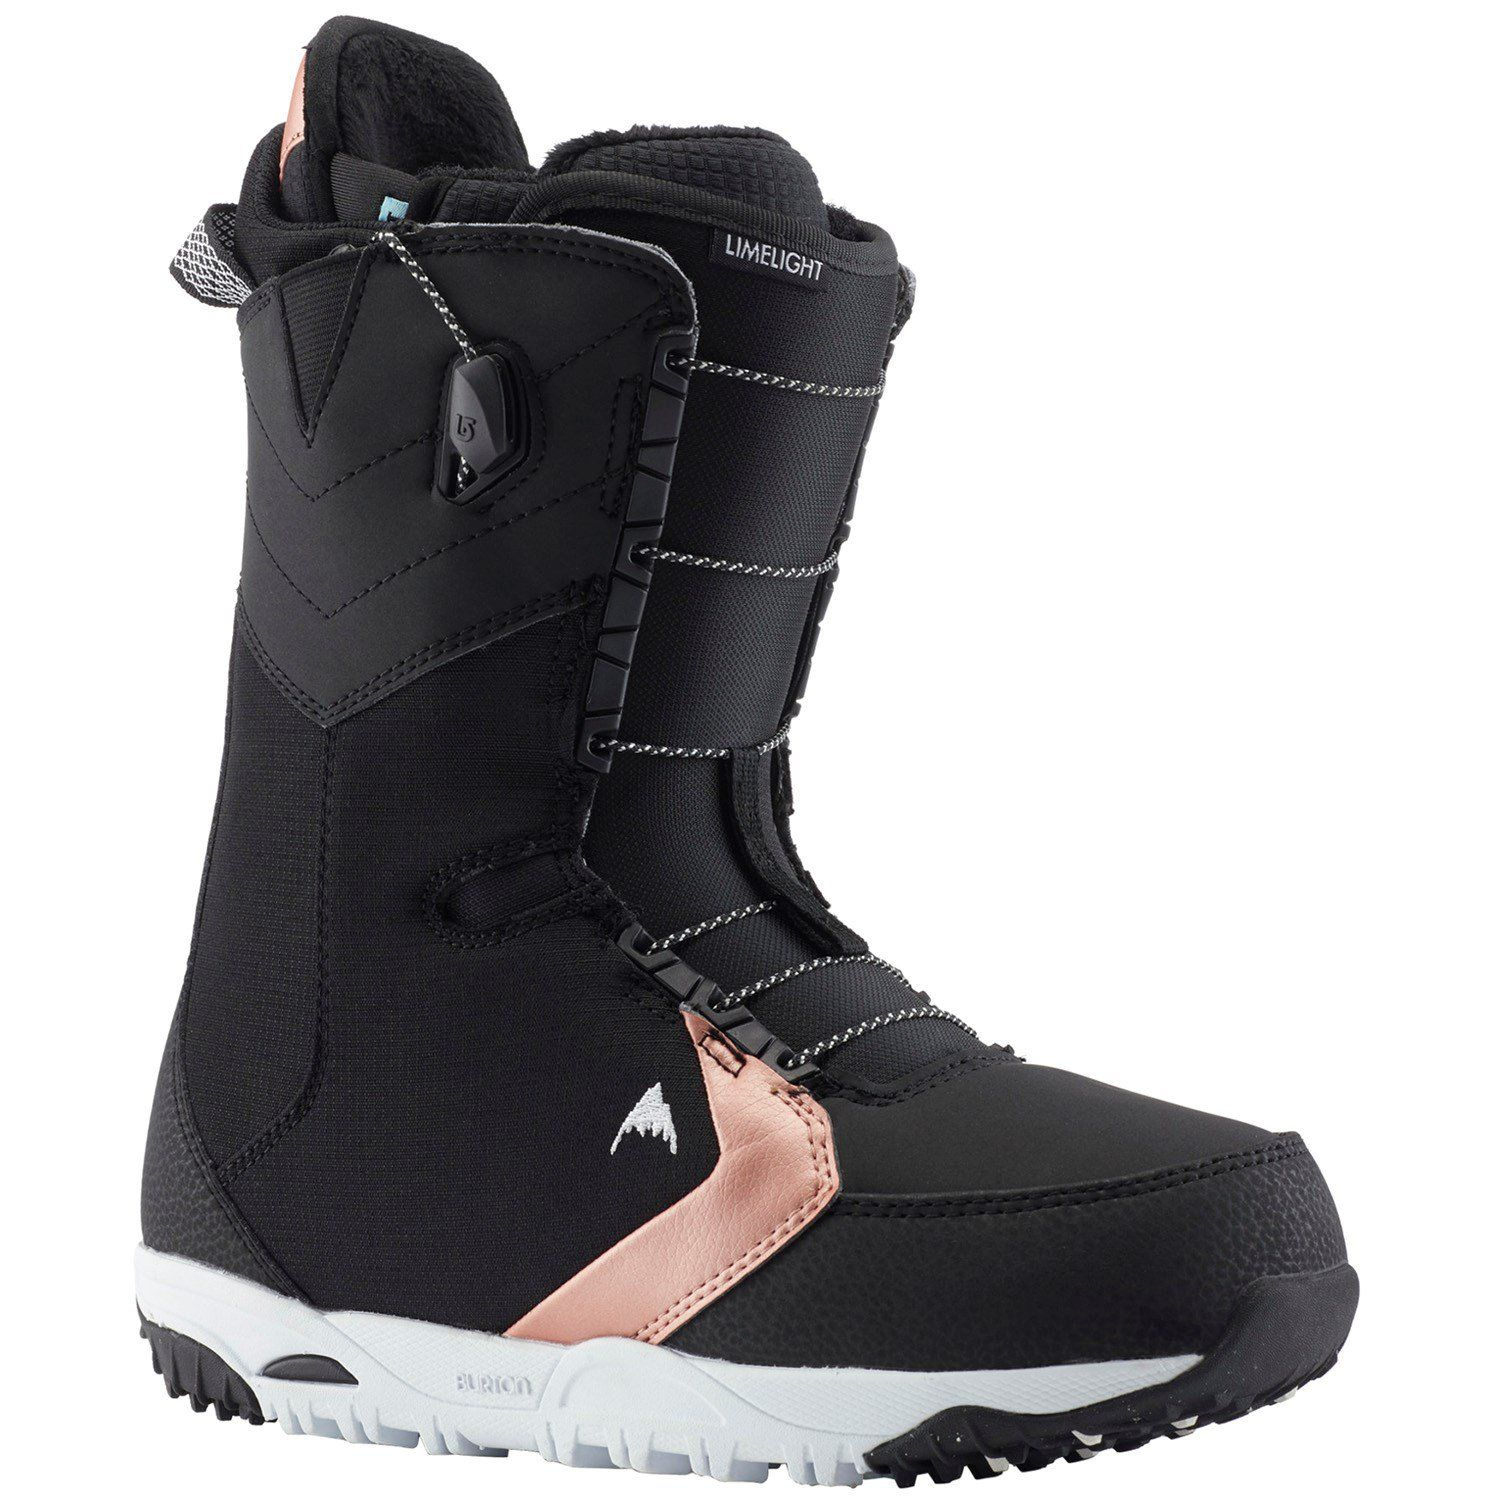 Burton limelight snowboard boots womens 2019 in 2020